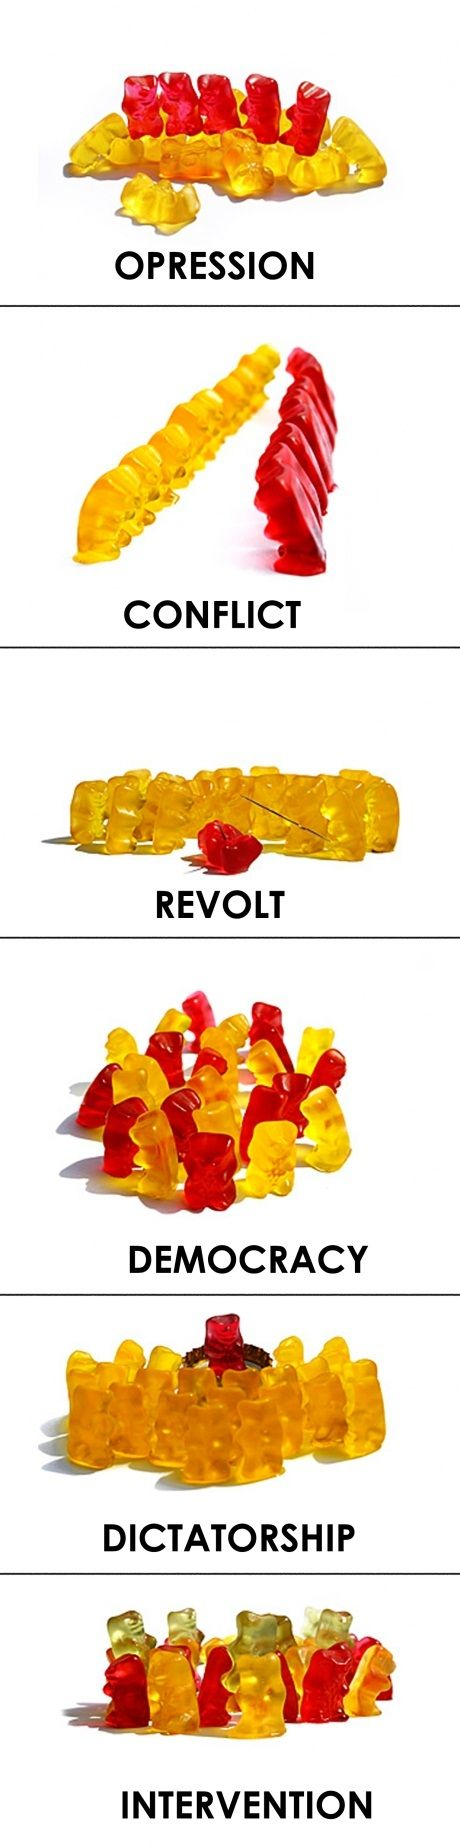 Teaching government systems with gummy bears- I may NOW have seen it all. But, hey, I get it!